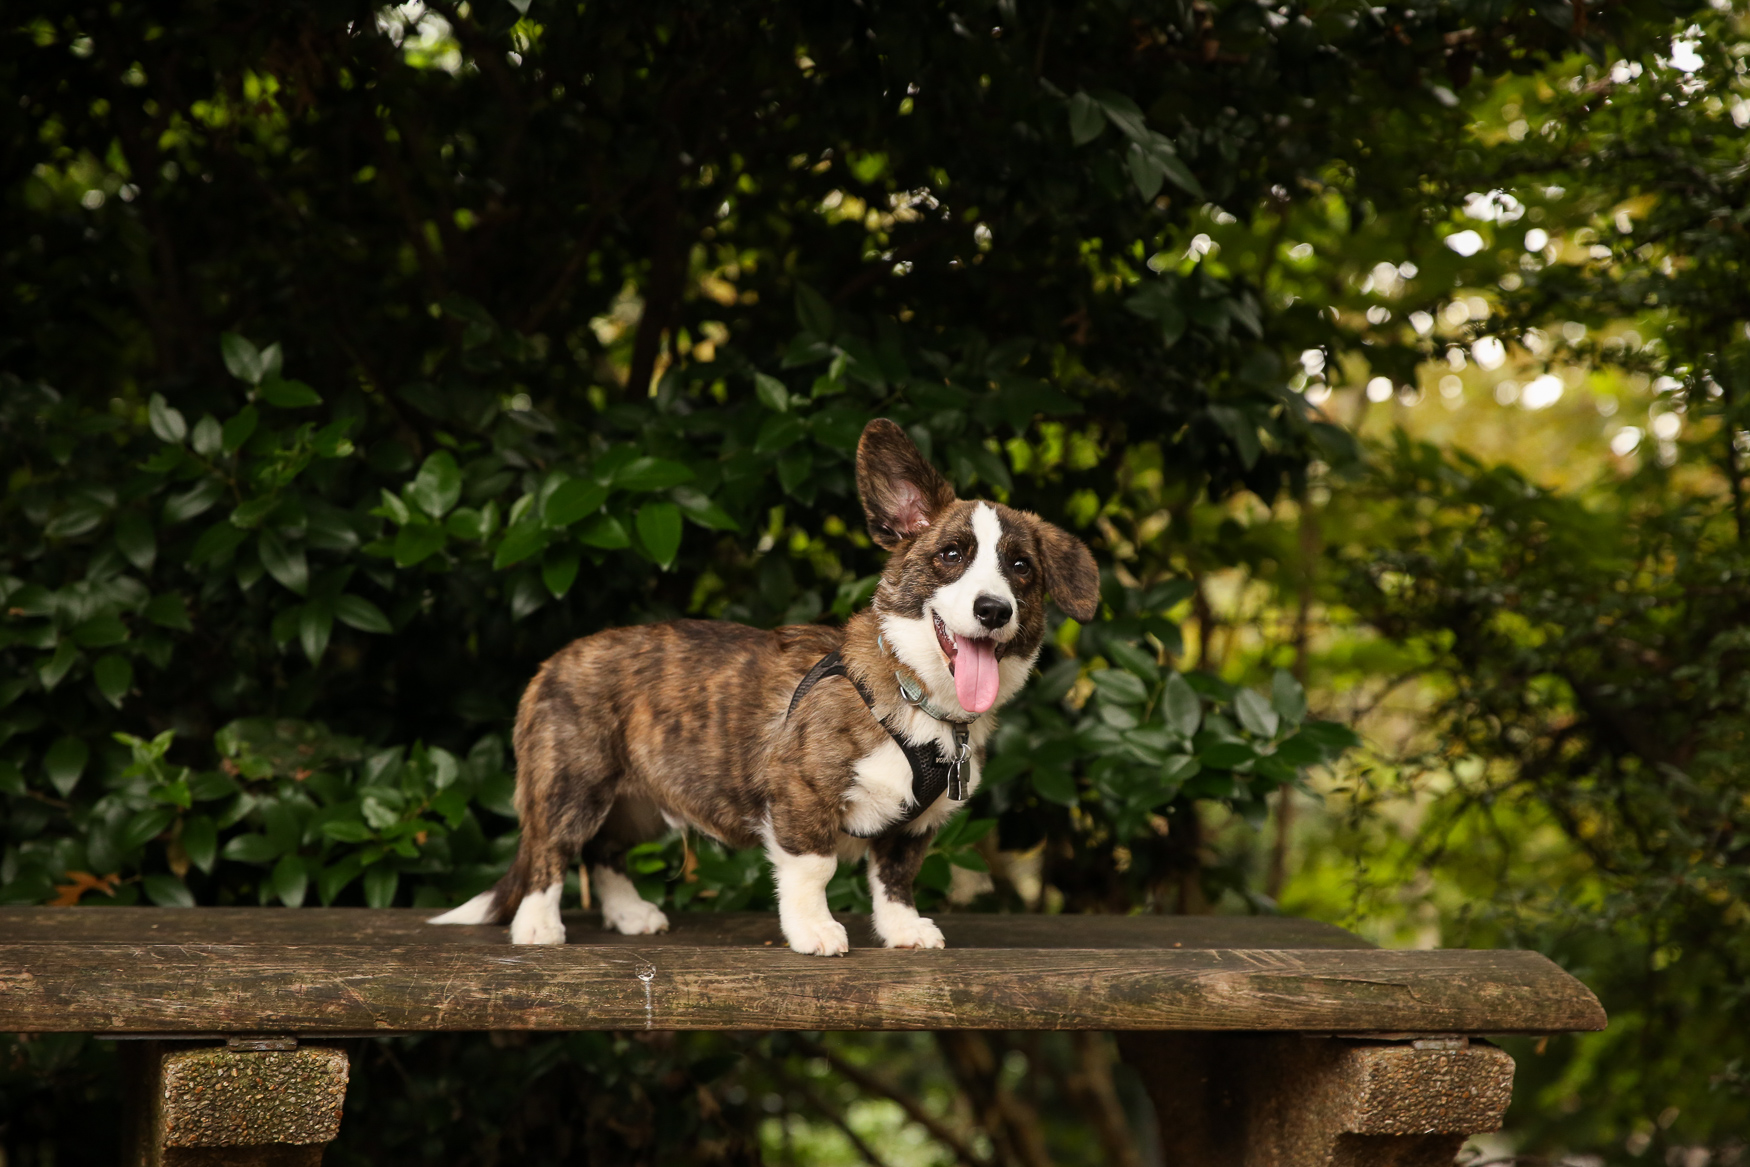 "Meet Wally, a 5.5-month-old Cardigan Corgi. Wally loves{ }cottage cheese and convincing big dogs to chase him around the dog park, but he absolutely hates brooms and mops. He's still learning all the tricks of being a dog, but he did recently master ""paw"" and is very pleased with himself. Wally's family knew he was going to fit right in the moment they got him home. He had been very nervous on the drive home but as soon as he got inside his new house, he immediately pulled a blanket off the couch and made himself at home! The blanket is officially his now :) You can follow Wally's adventures on his IG account: @wallyinacardigan. If you're interested in having your pup featured, drop us a line at aandrade@dcrefined.com (Amanda Andrade-Rhoades/DC Refined)"